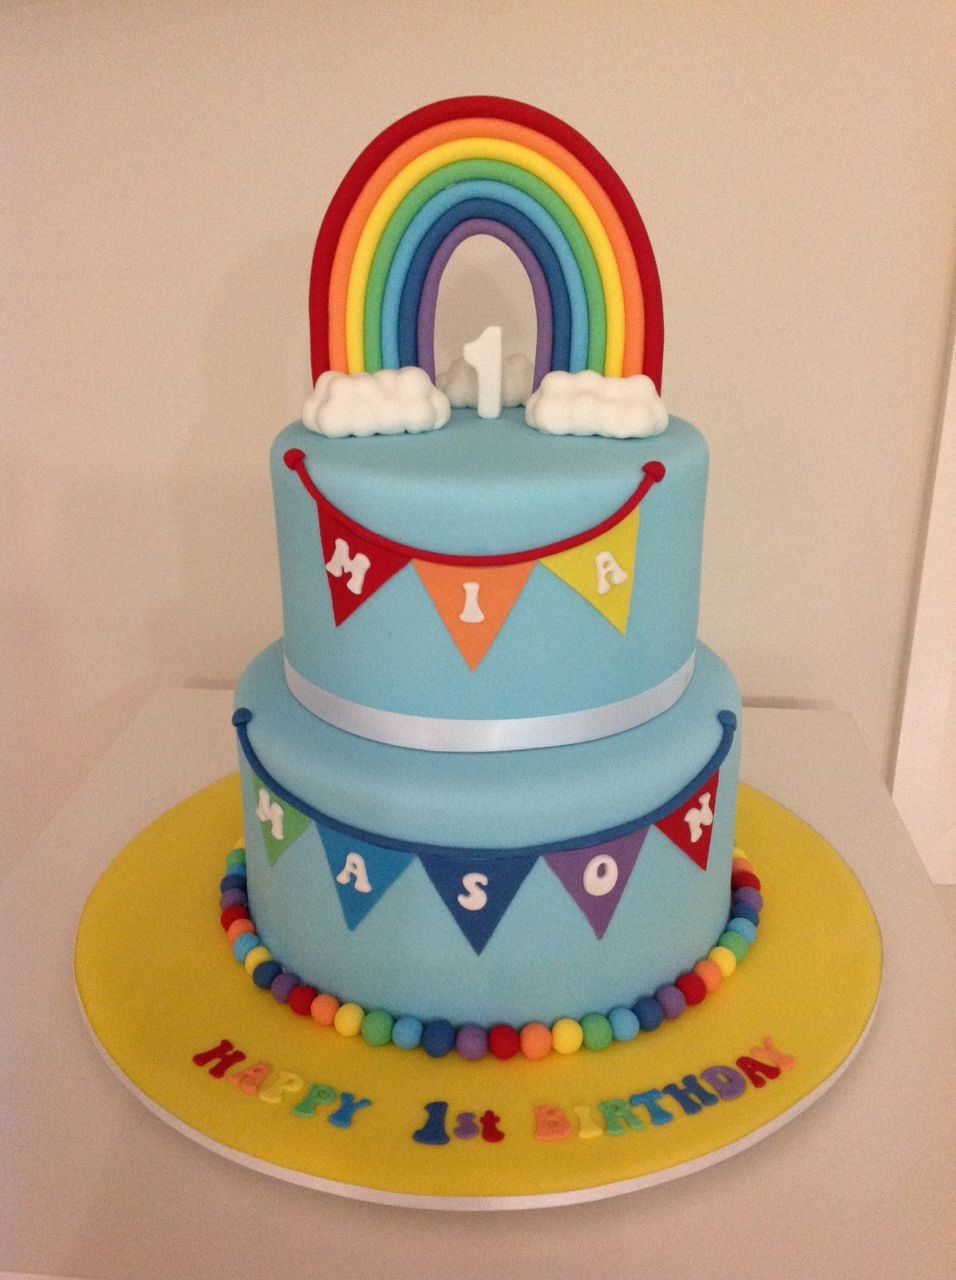 1st Birthday Rainbow Cakes Share With Images Twin Birthday Cakes First Birthday Cakes 1st Birthday Cakes